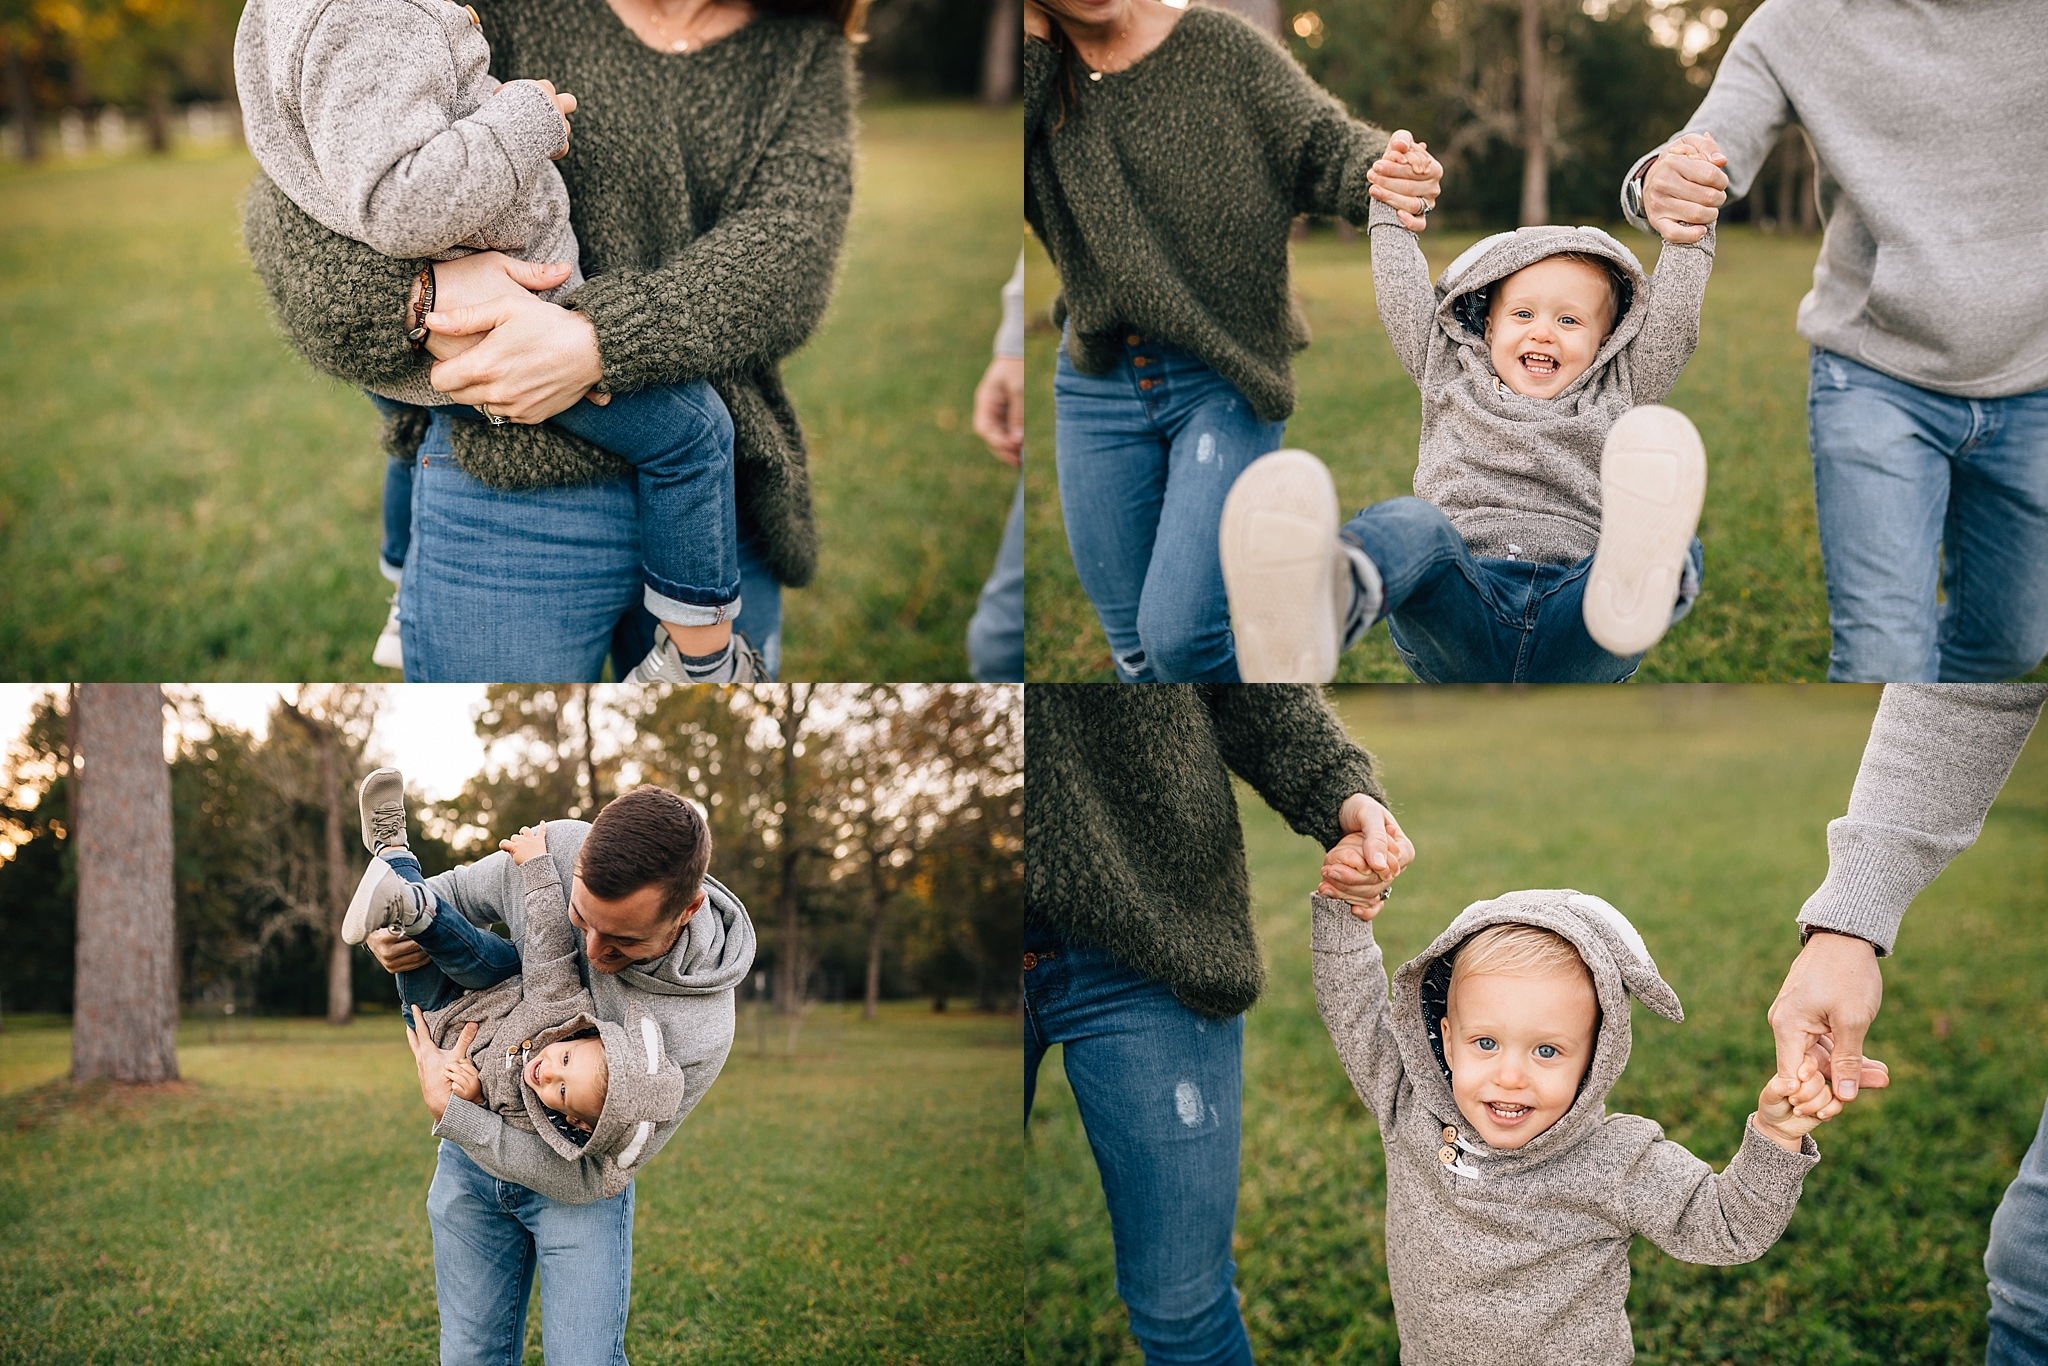 candid-family-photos-playing-with-son